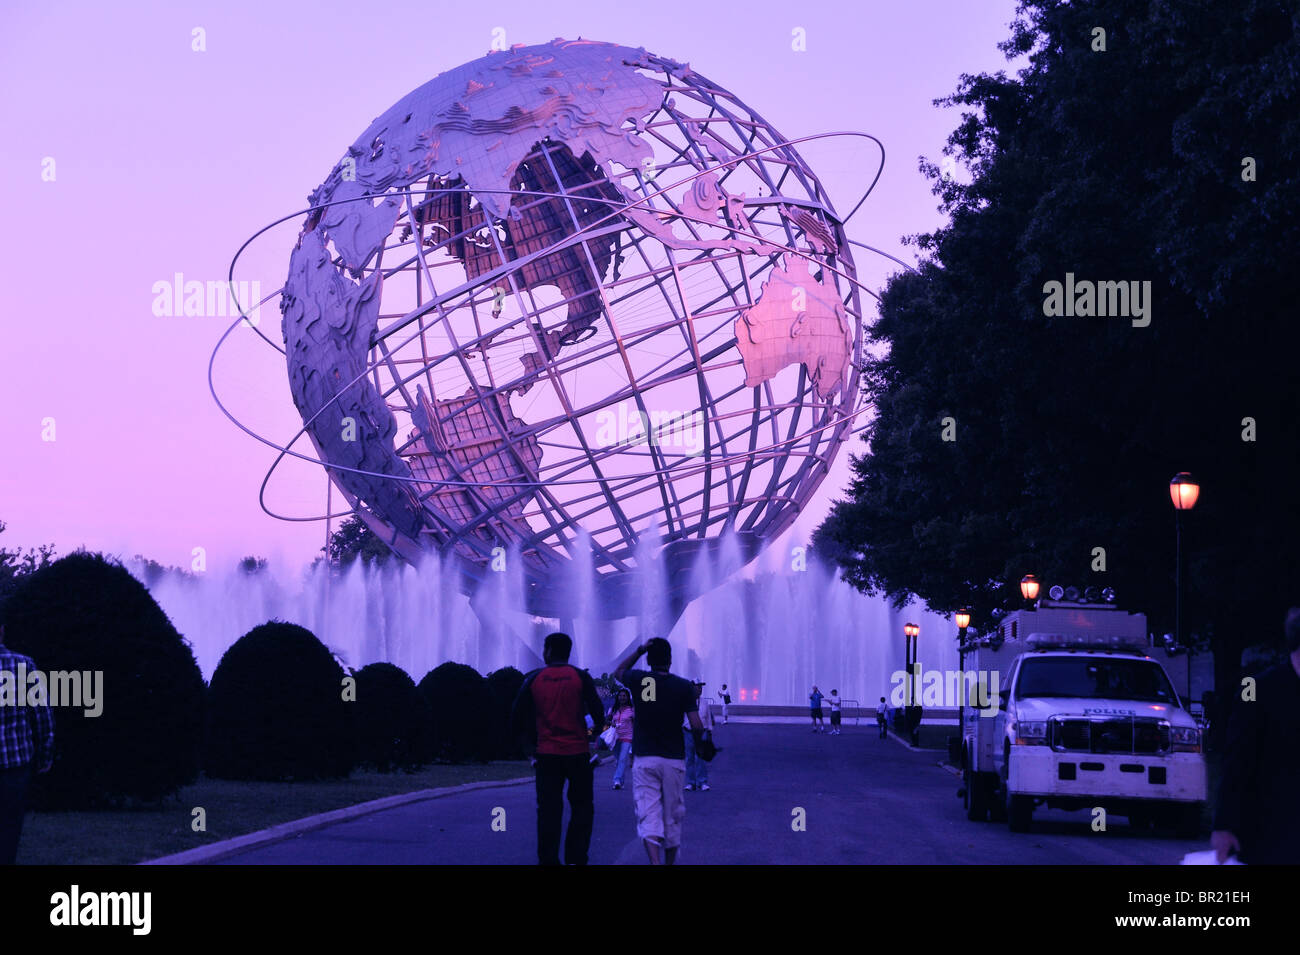 steel-globe-from-the-1964-worlds-fair-co